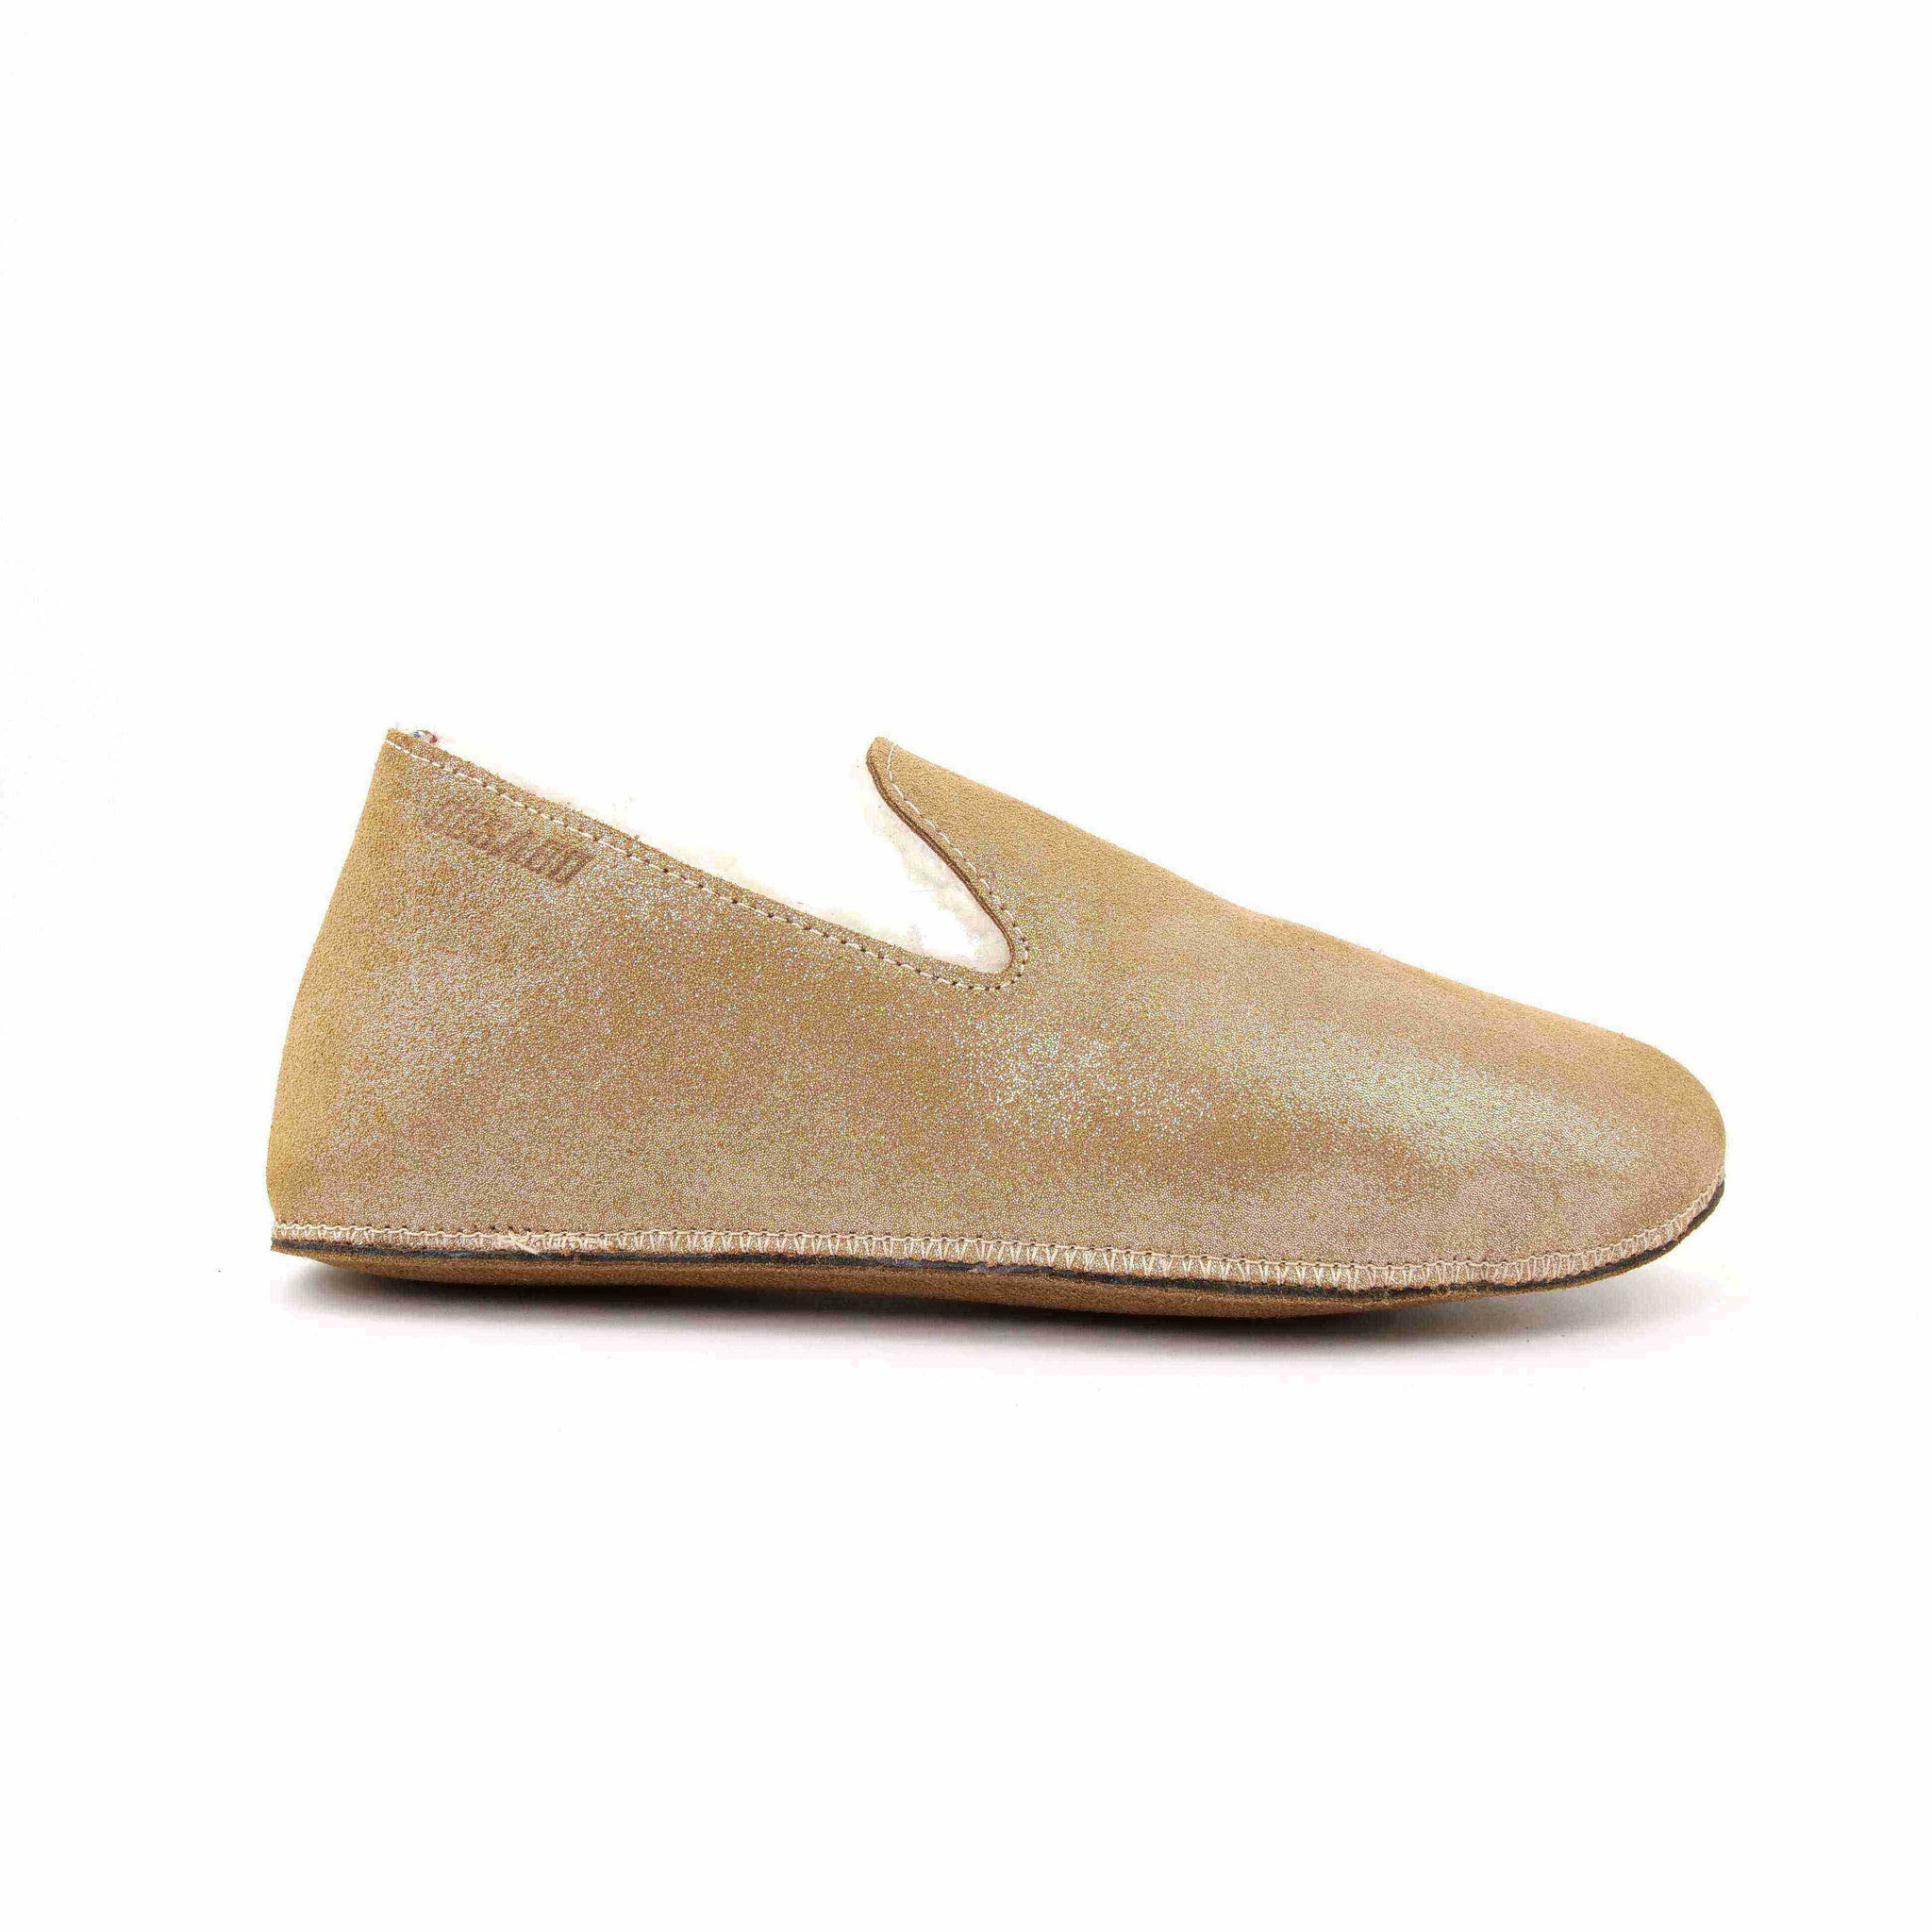 Hug Metallic suede leather slippers Caramel